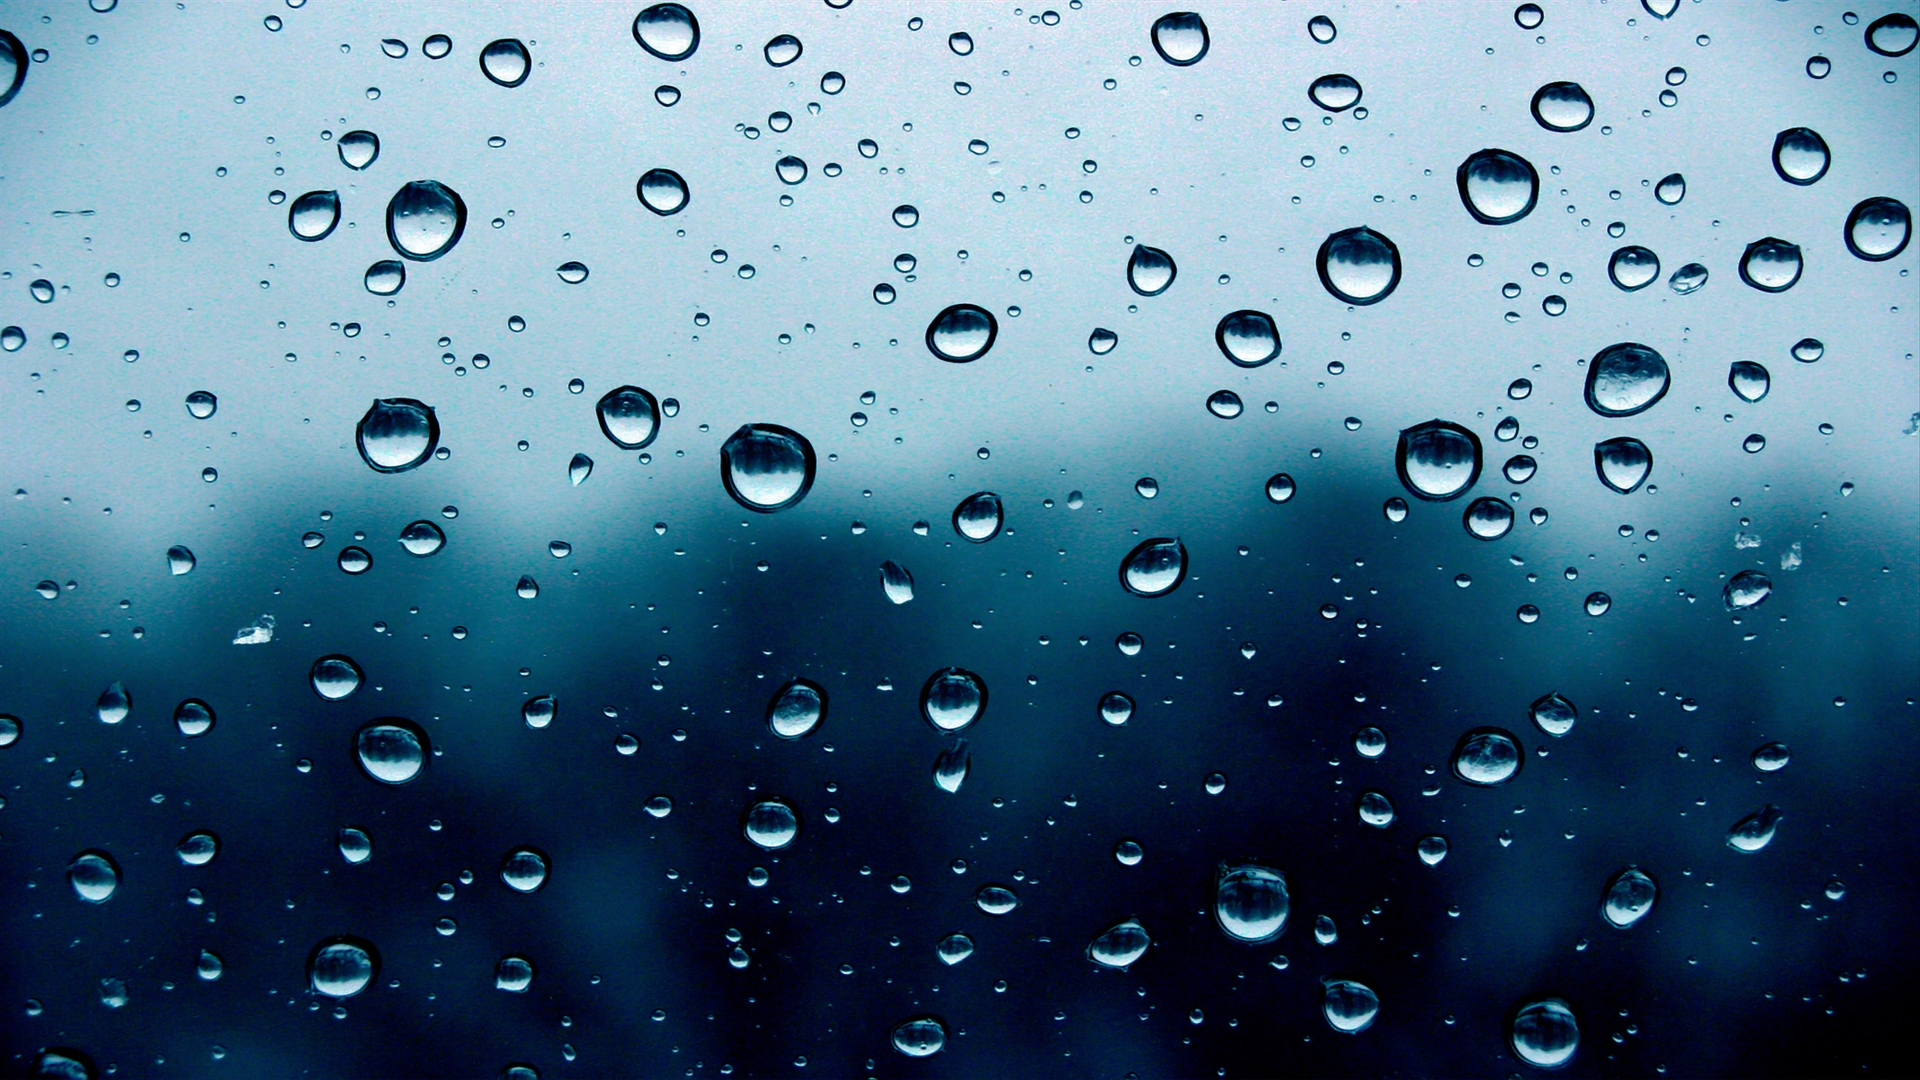 paste tech bugnetuploads downloadRainy day and Rain wallpaper 1920x1080